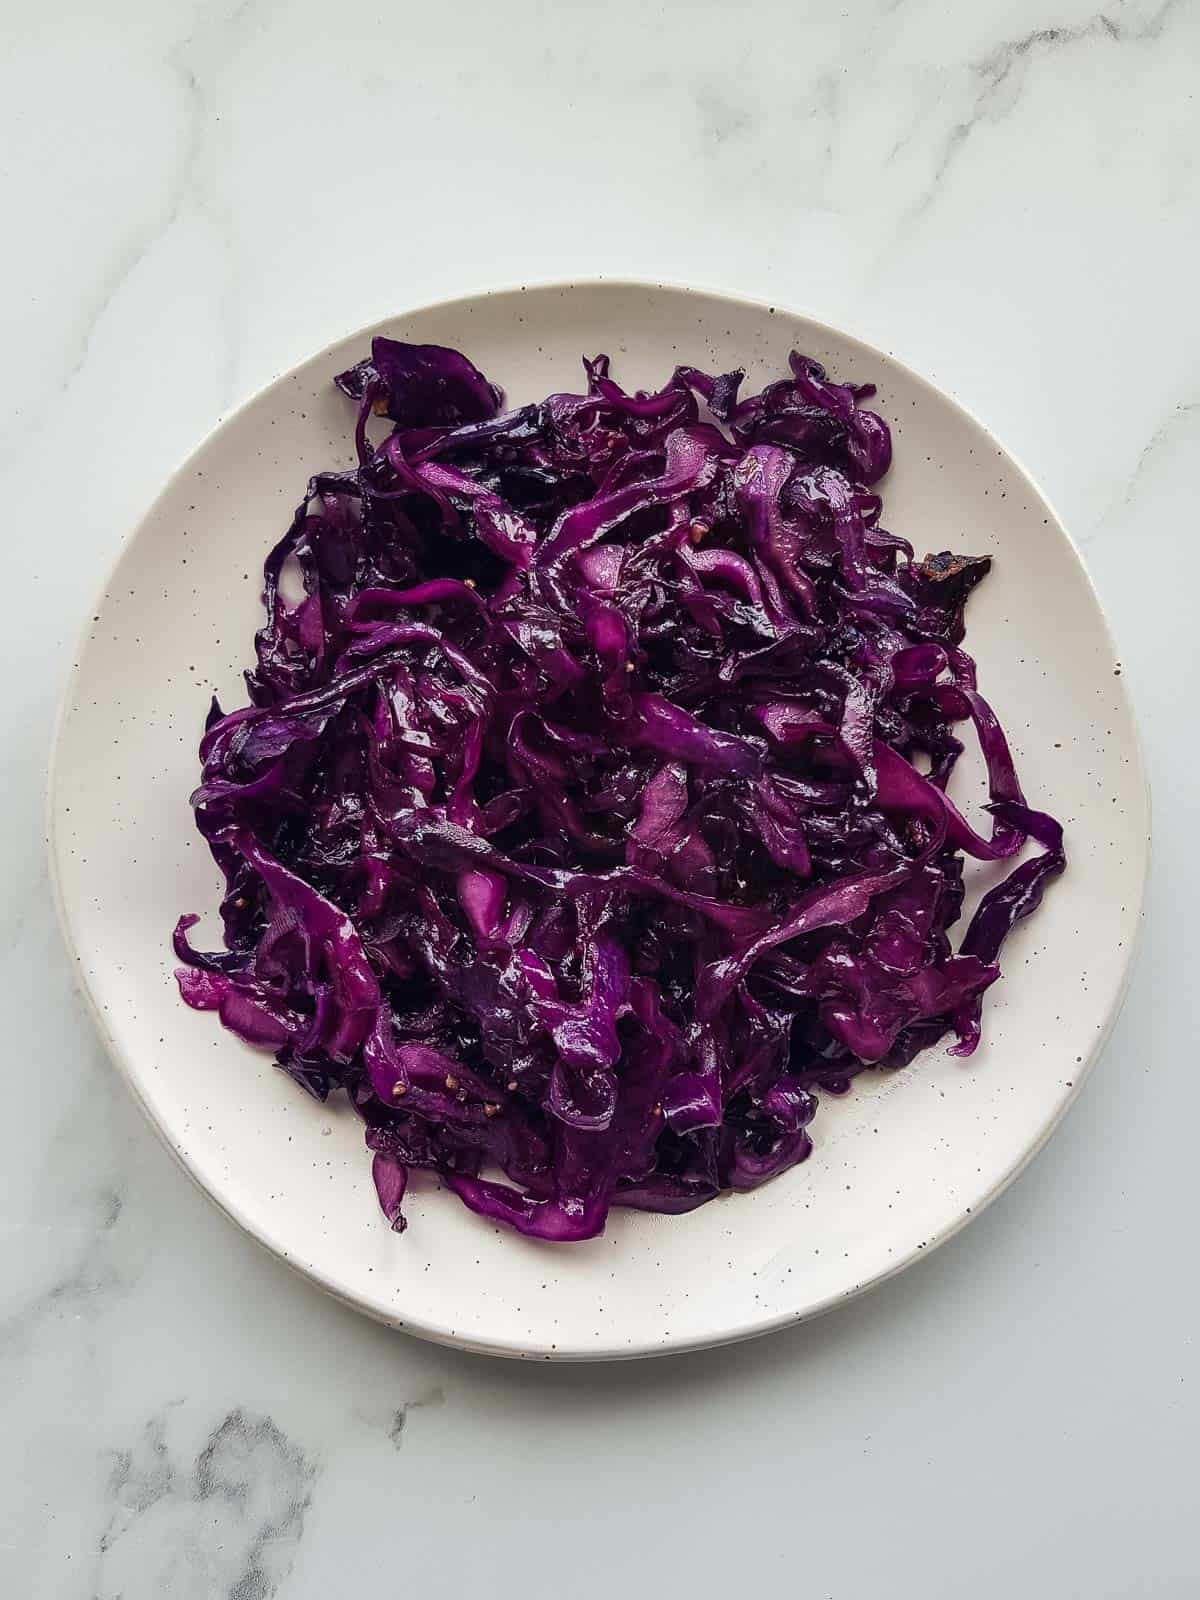 Sauteed red cabbage on a plate.